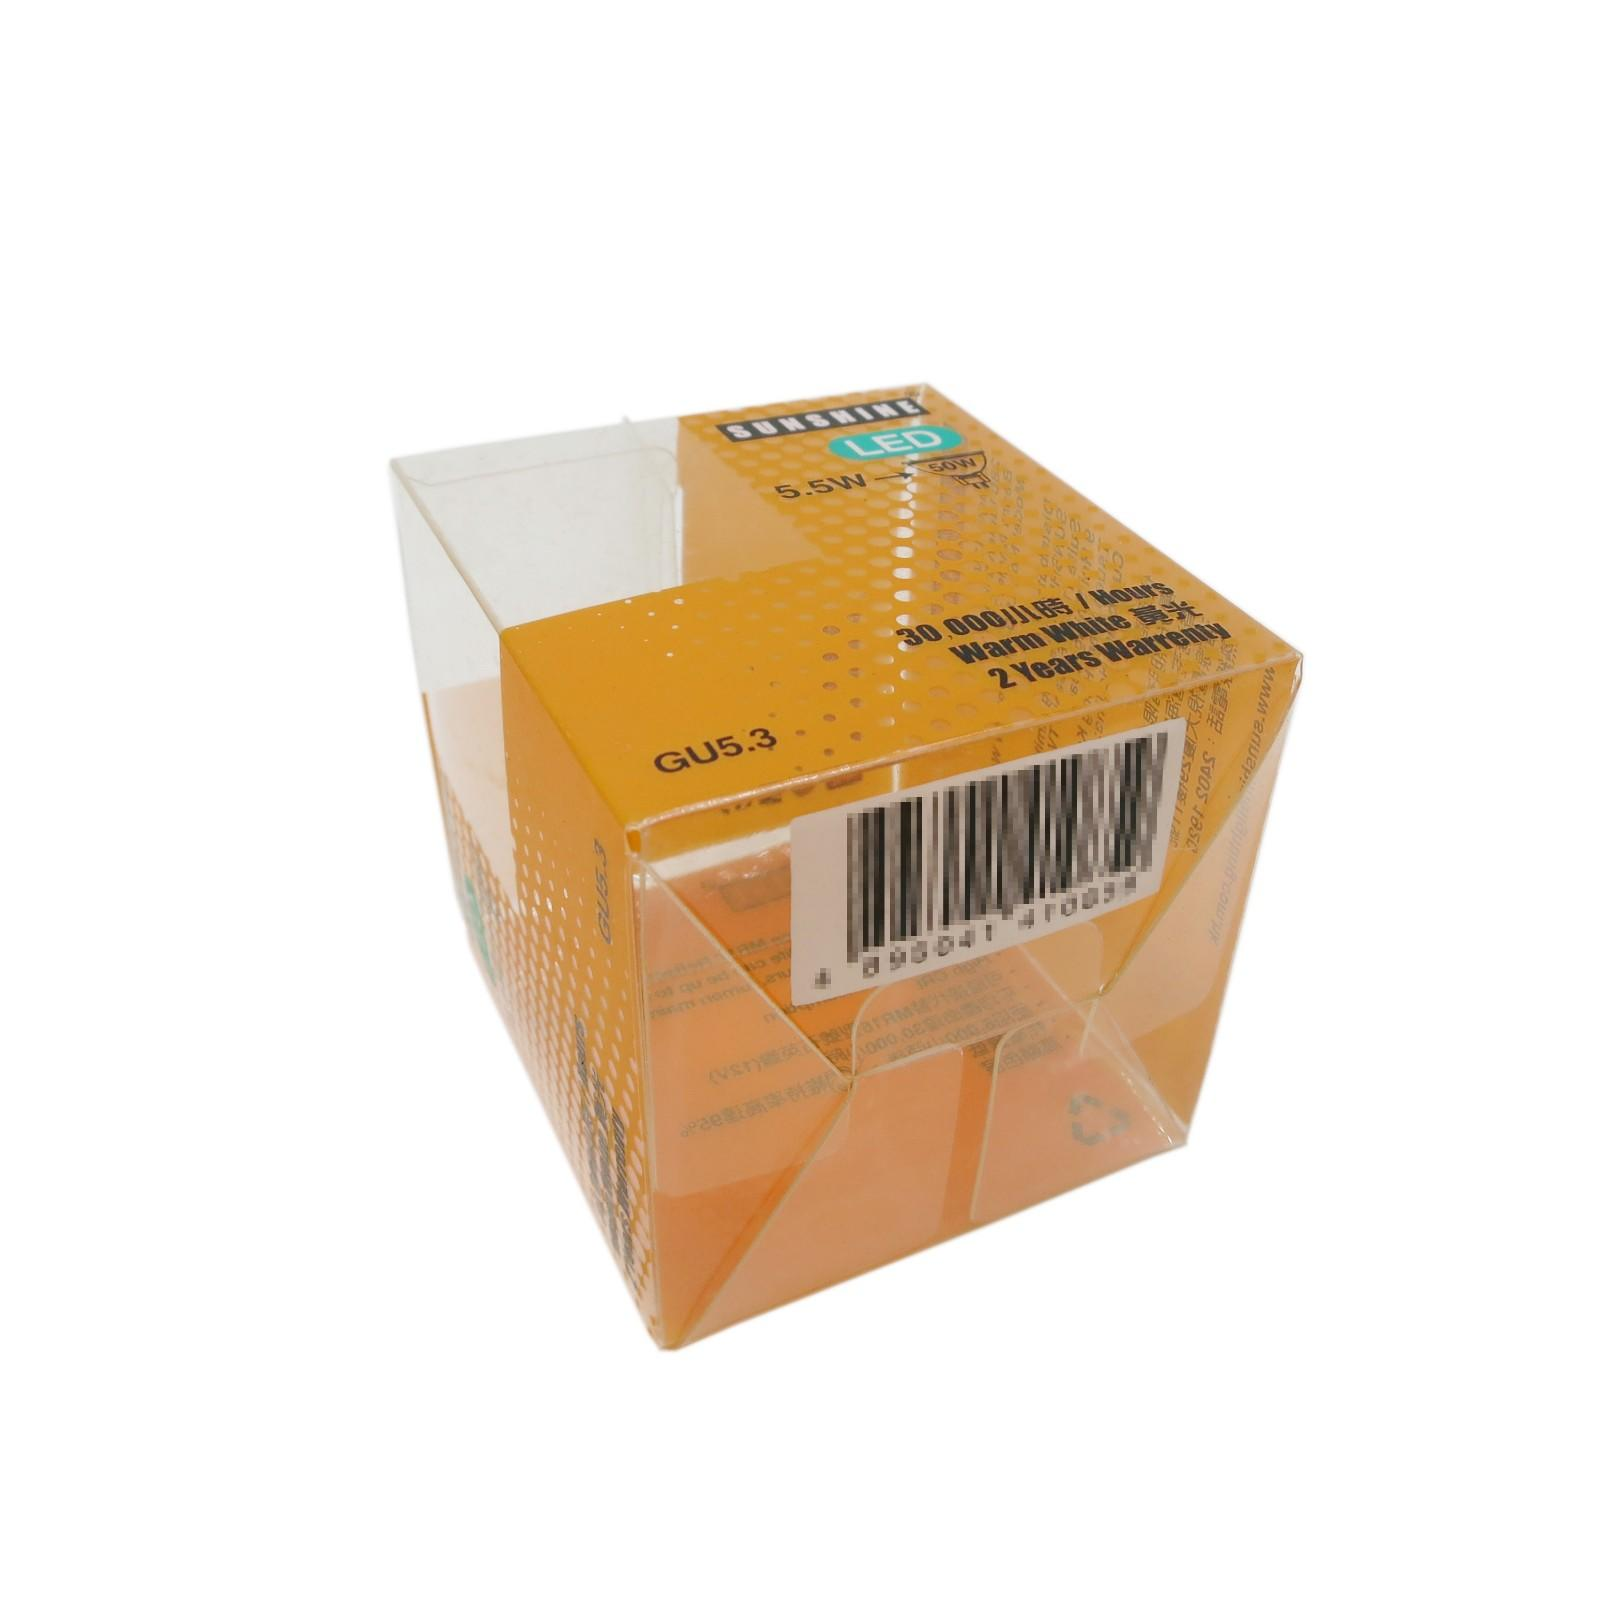 Yijianxing Plastic Products electronicscomputer clear plastic box packaging for wholesale for packing-3